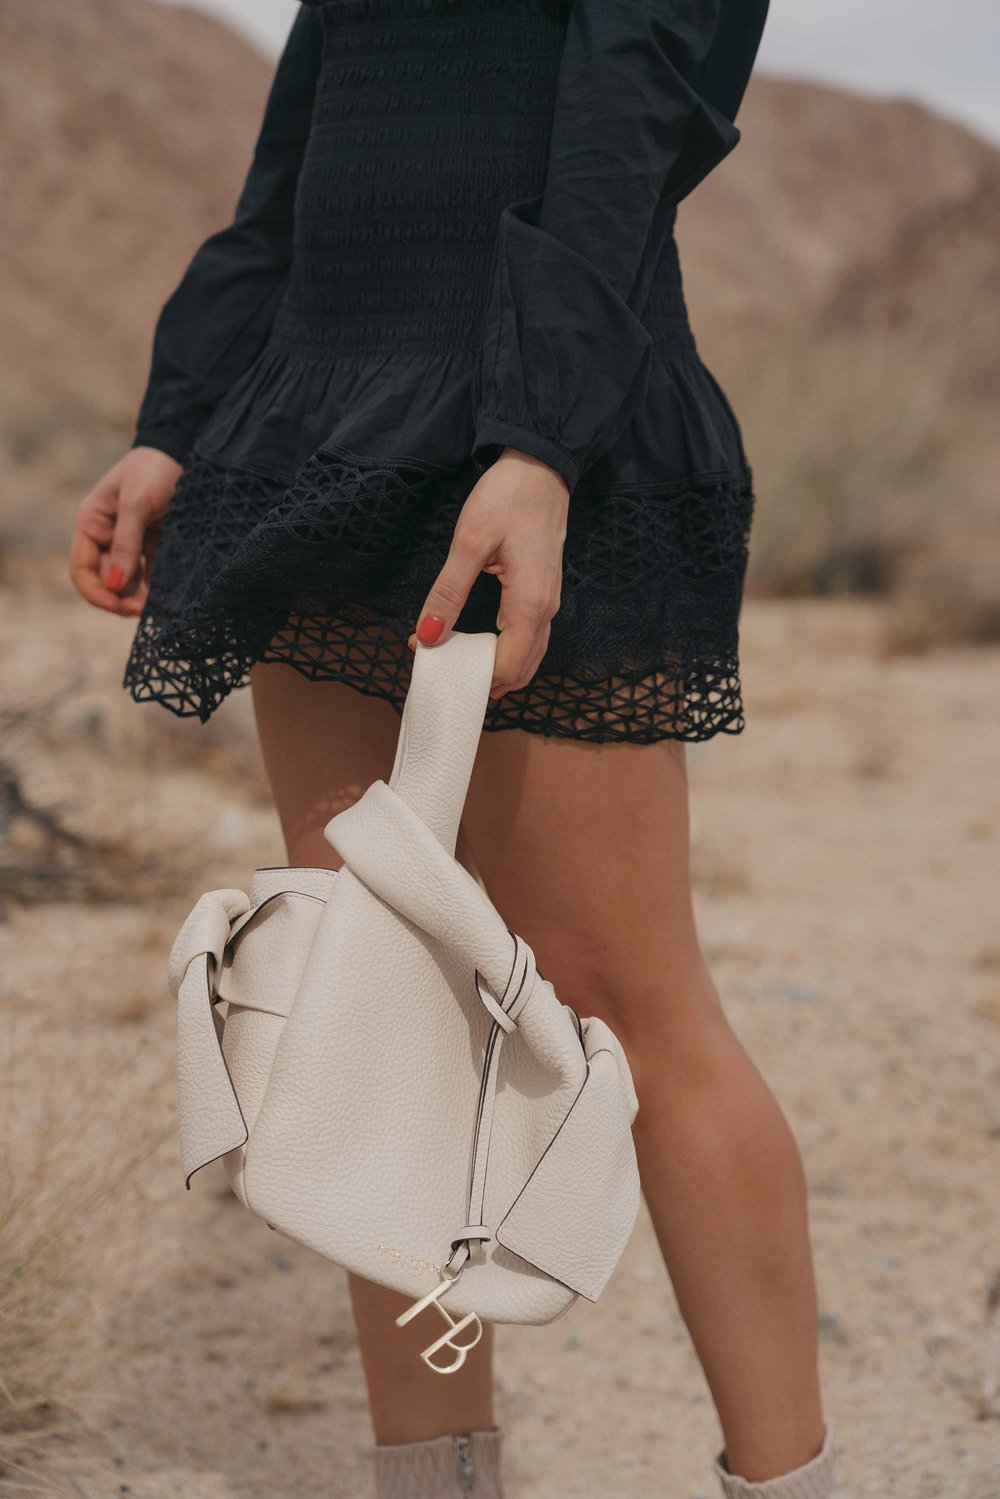 black lace festival outfit for Coachella Desert6.jpg